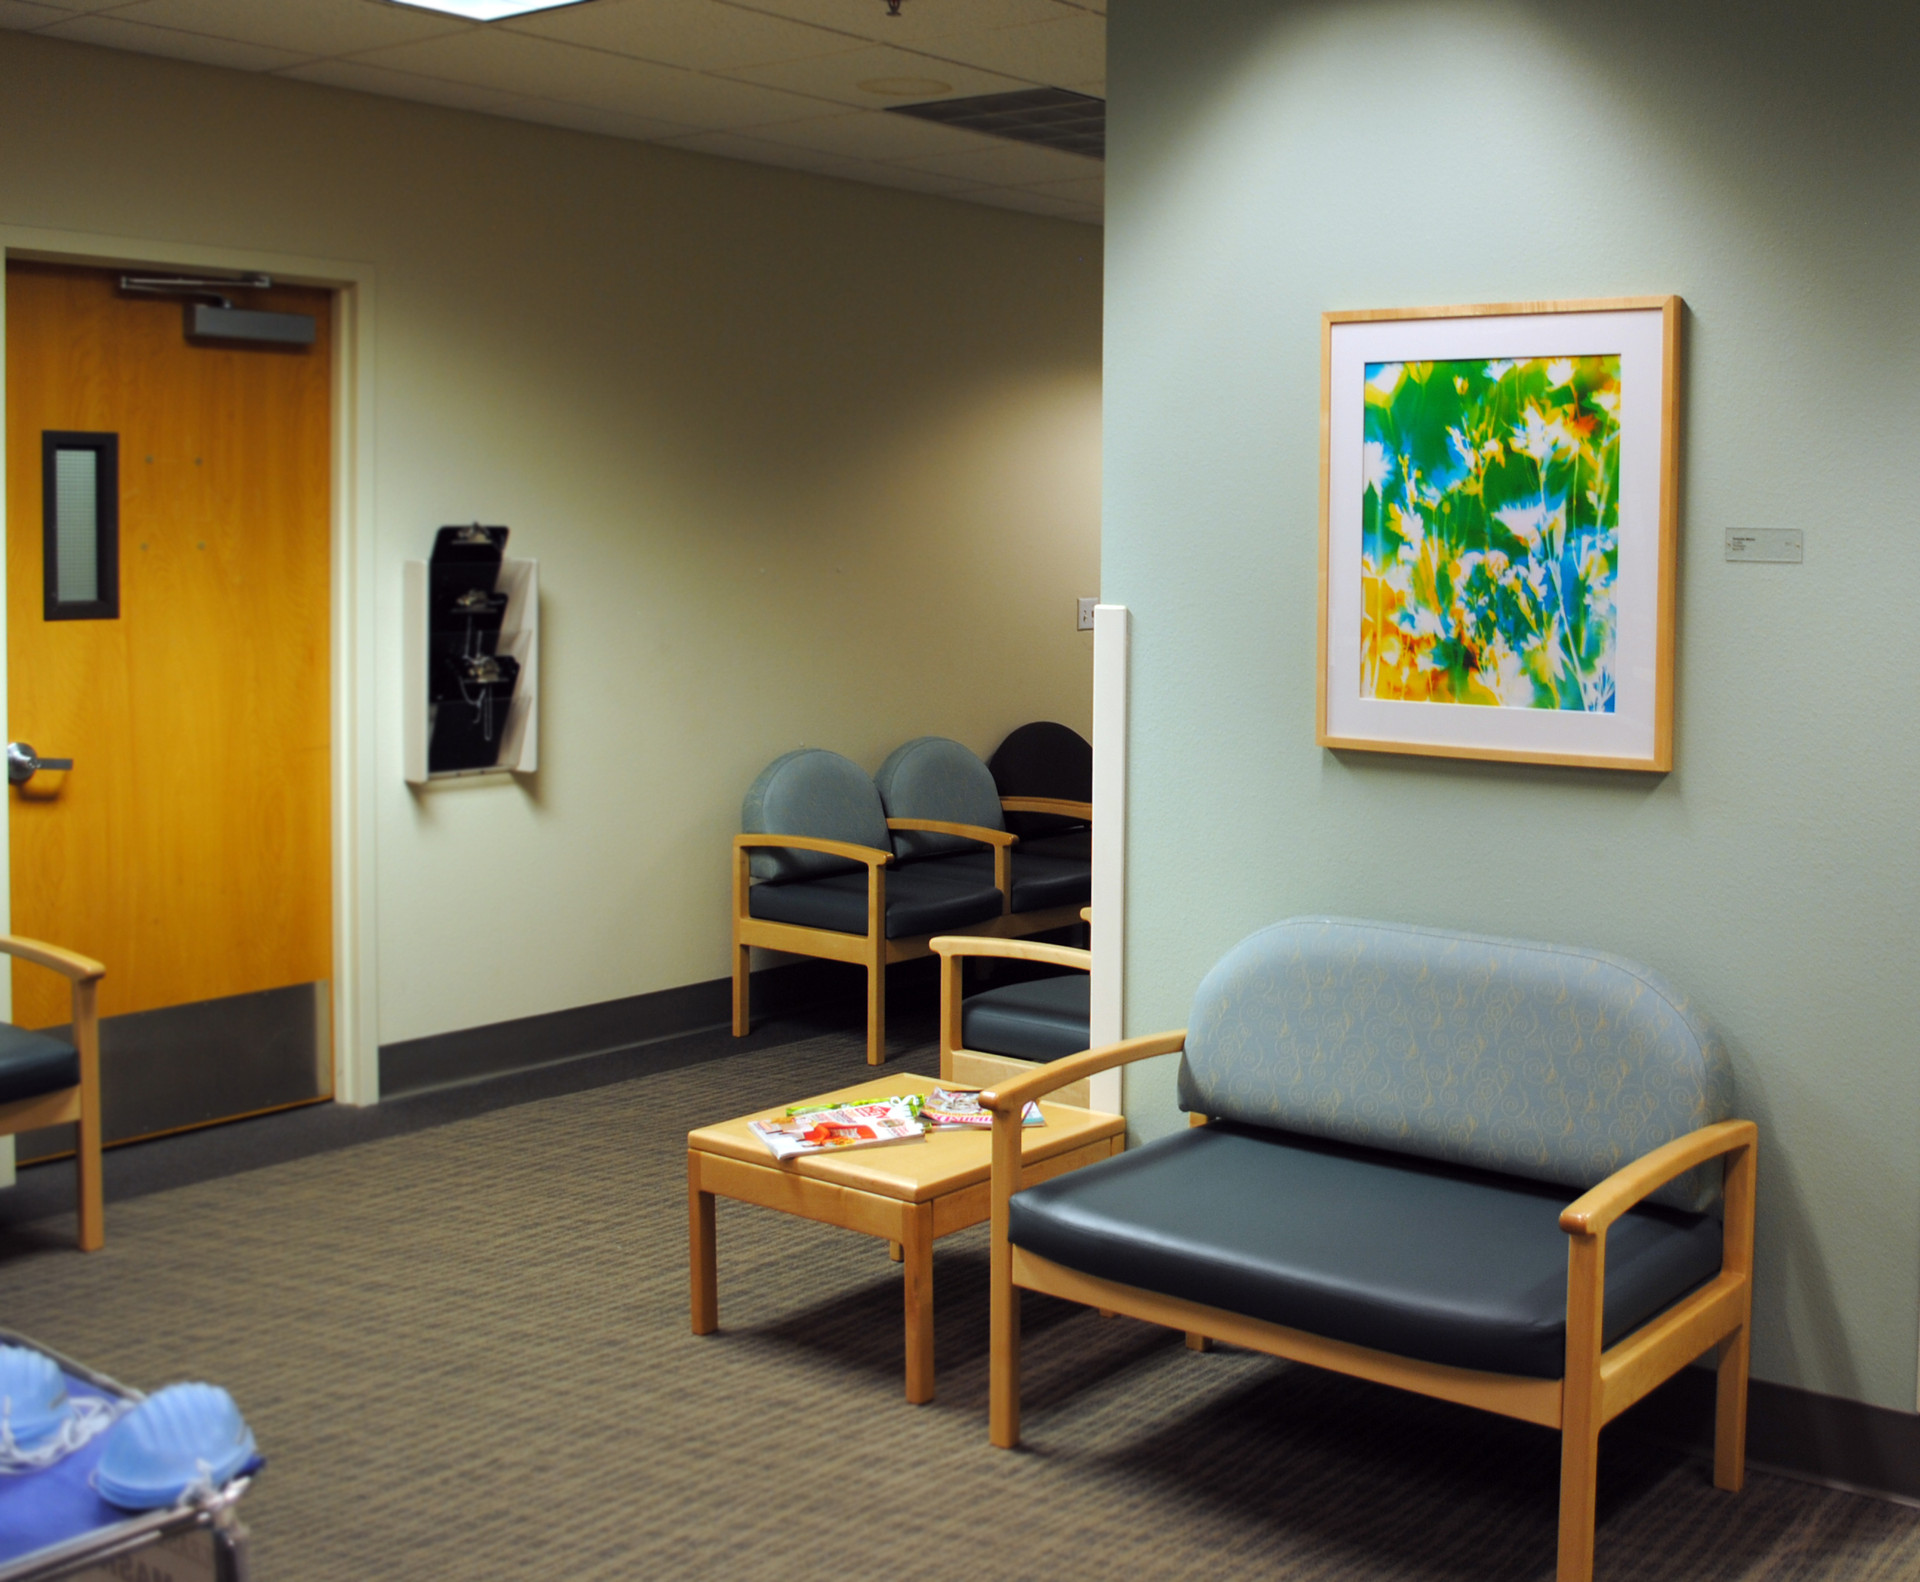 Installed at Kaiser Permanente, Fair Oaks, Sacramento, CA